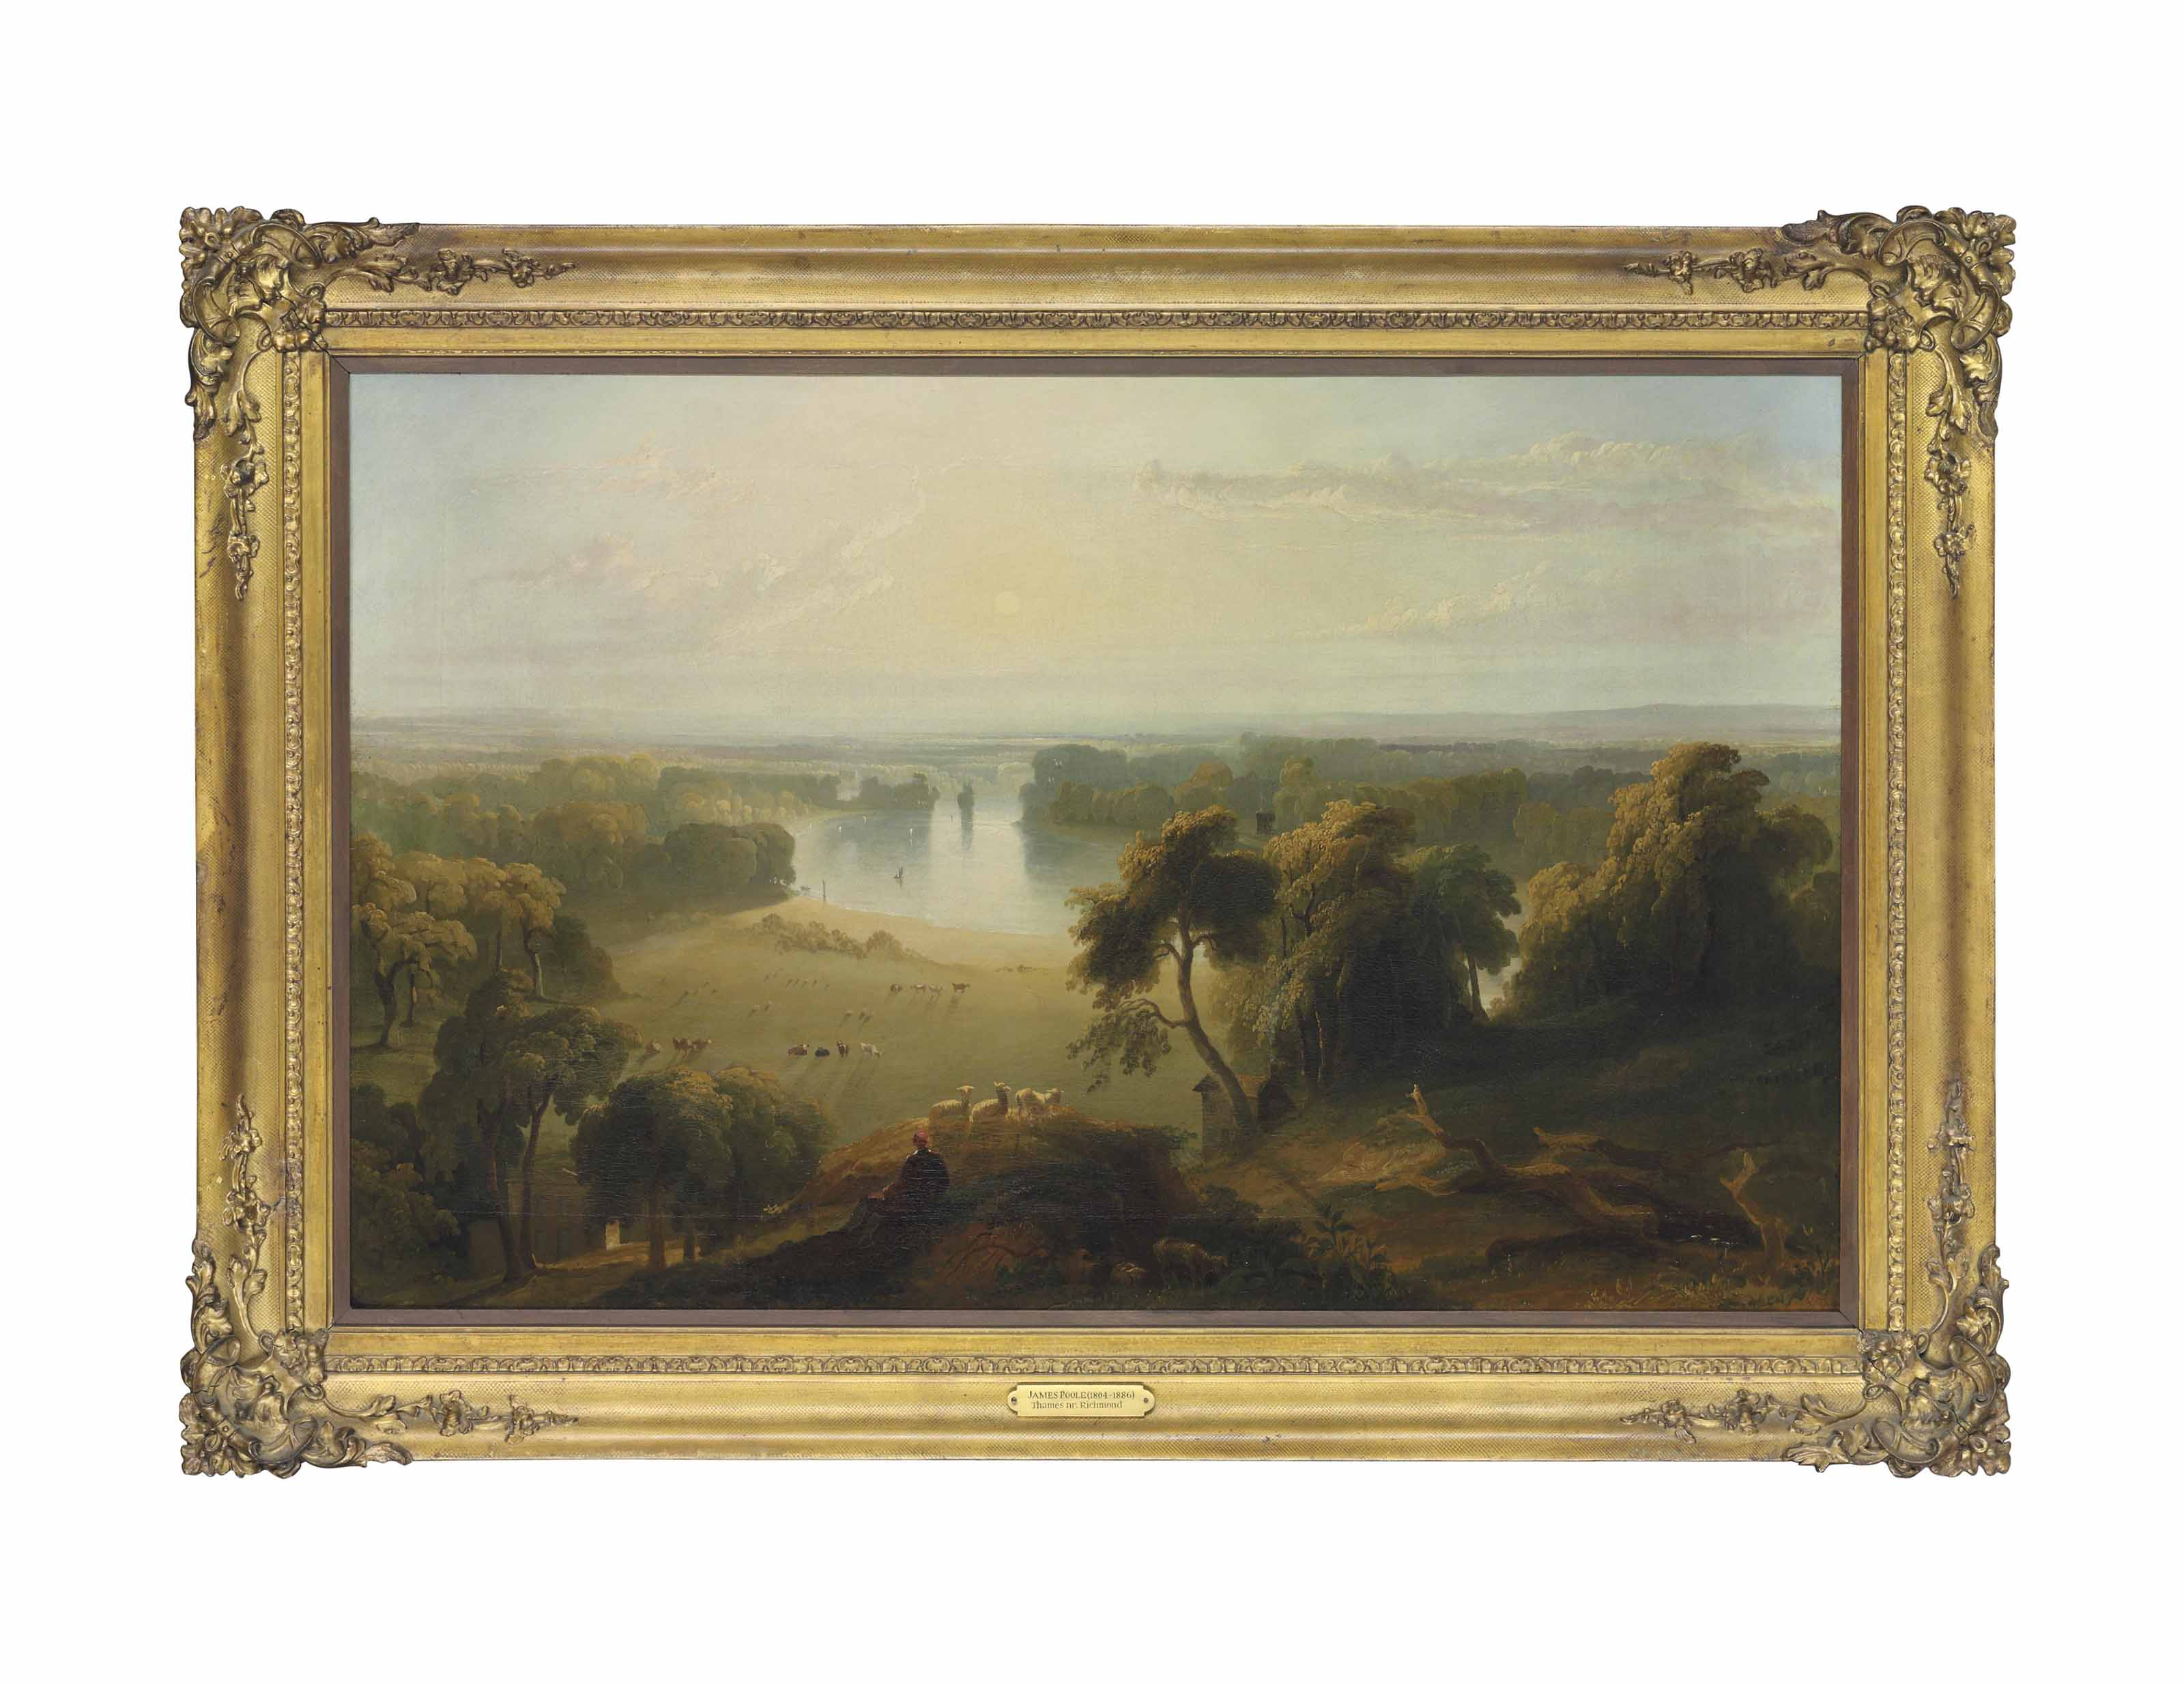 View of the Thames, from Richmond Hill, towards Ham